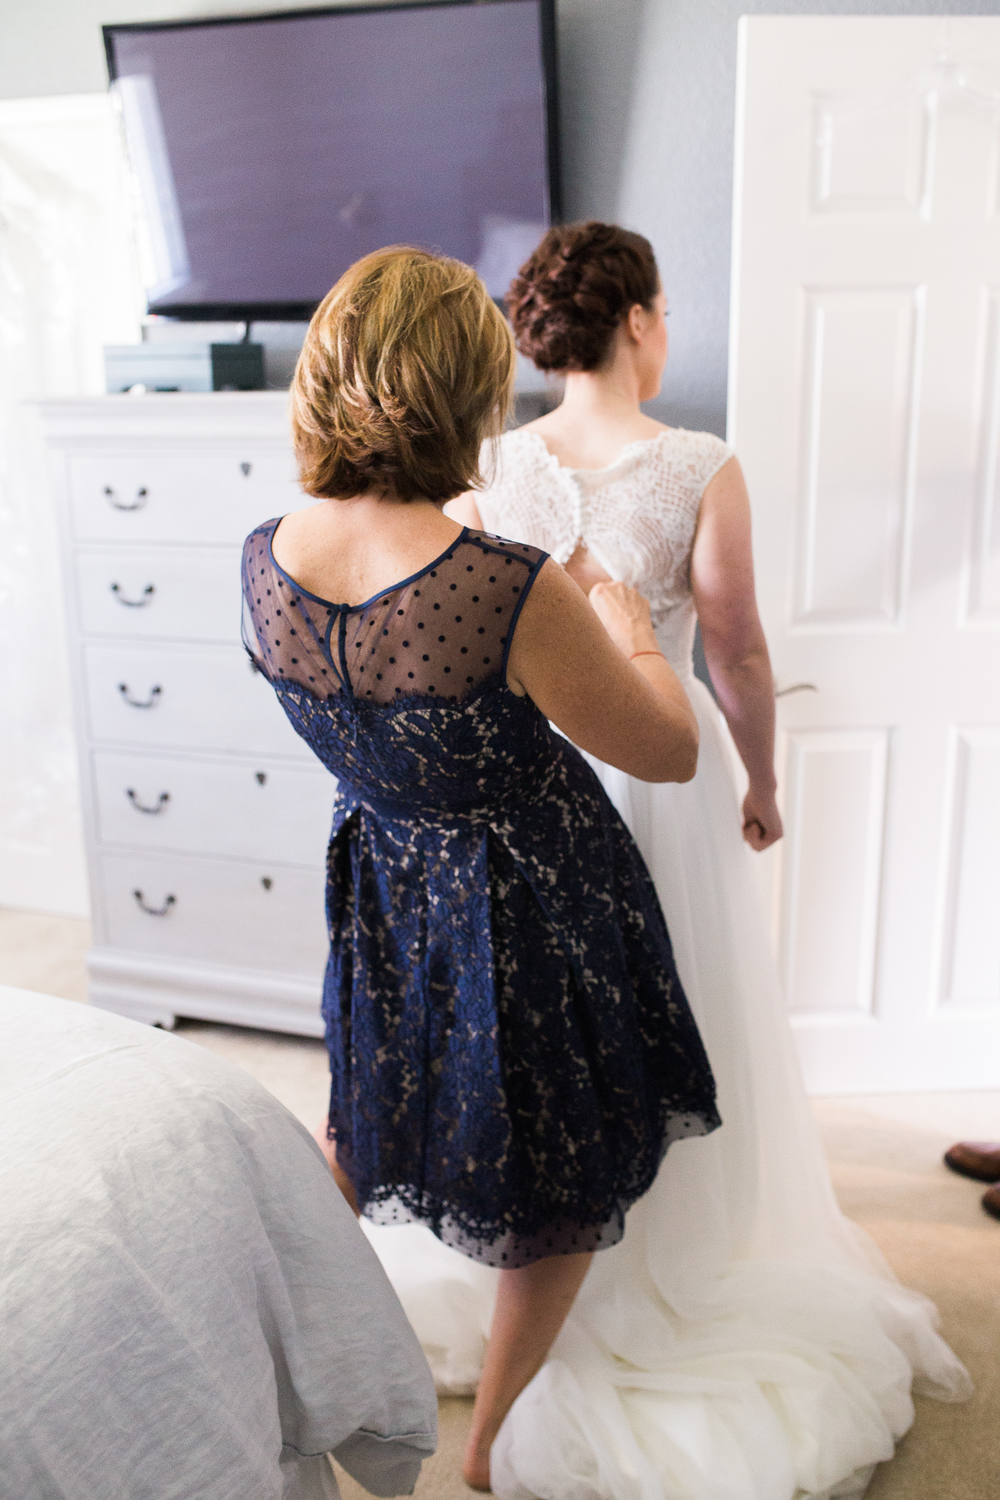 Coohills Wedding Photographer - putting on wedding dress